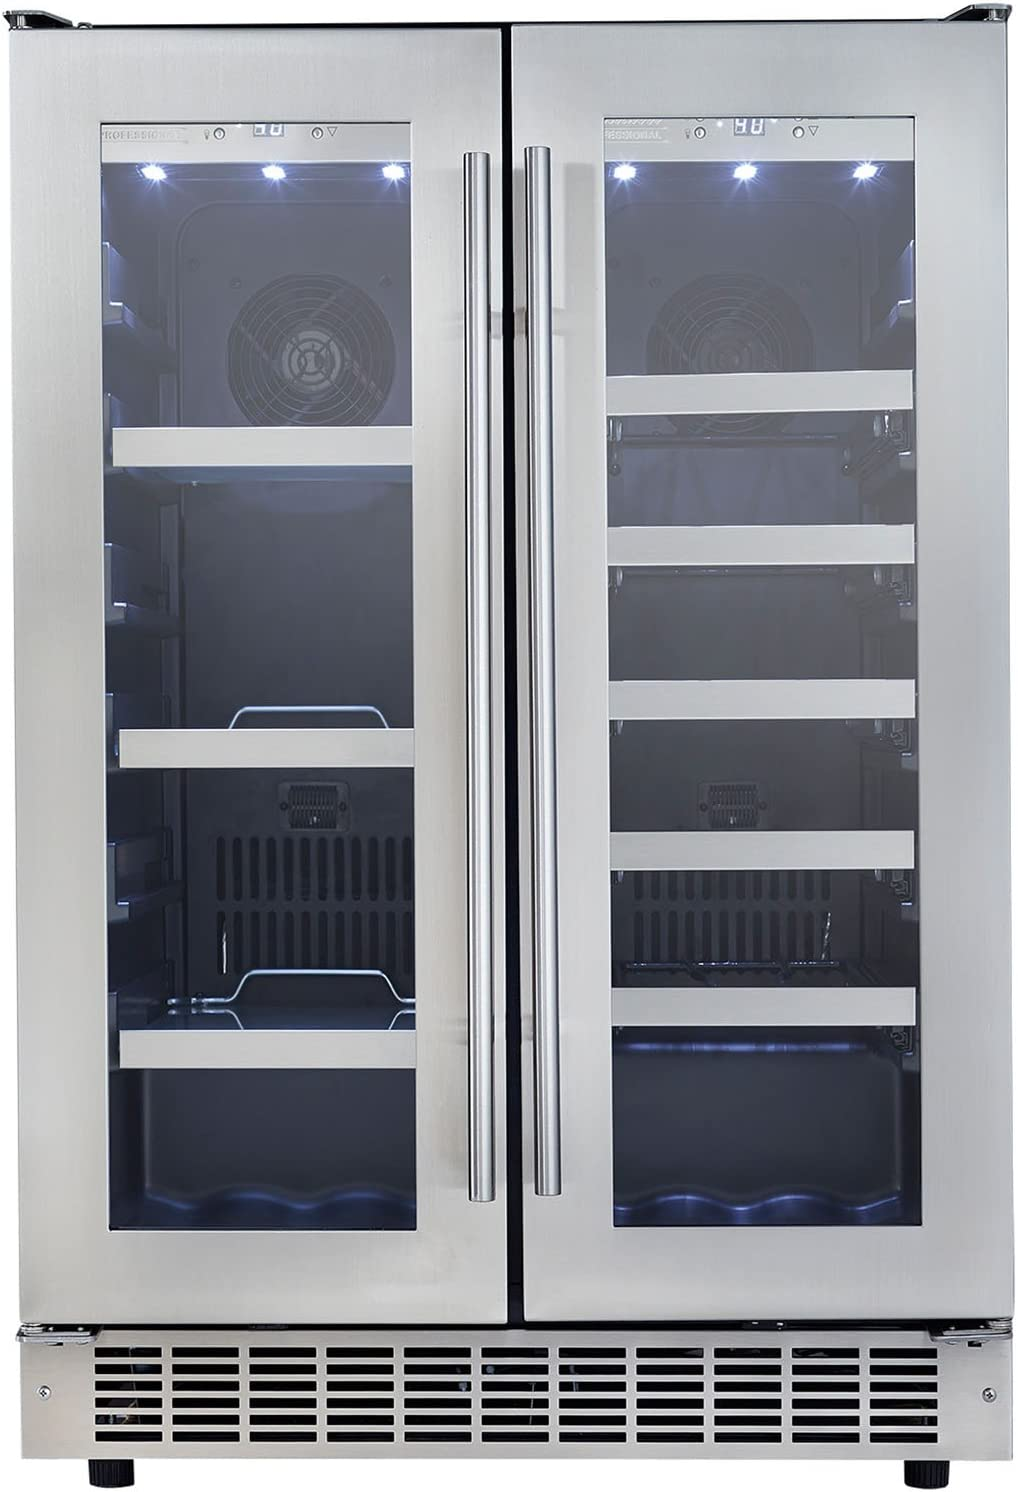 Danby DBC047D1BSSPR Silhouette Built-In Beverage Center, 4.7 Cubic Feet, Black/Stainless Steel/Glass